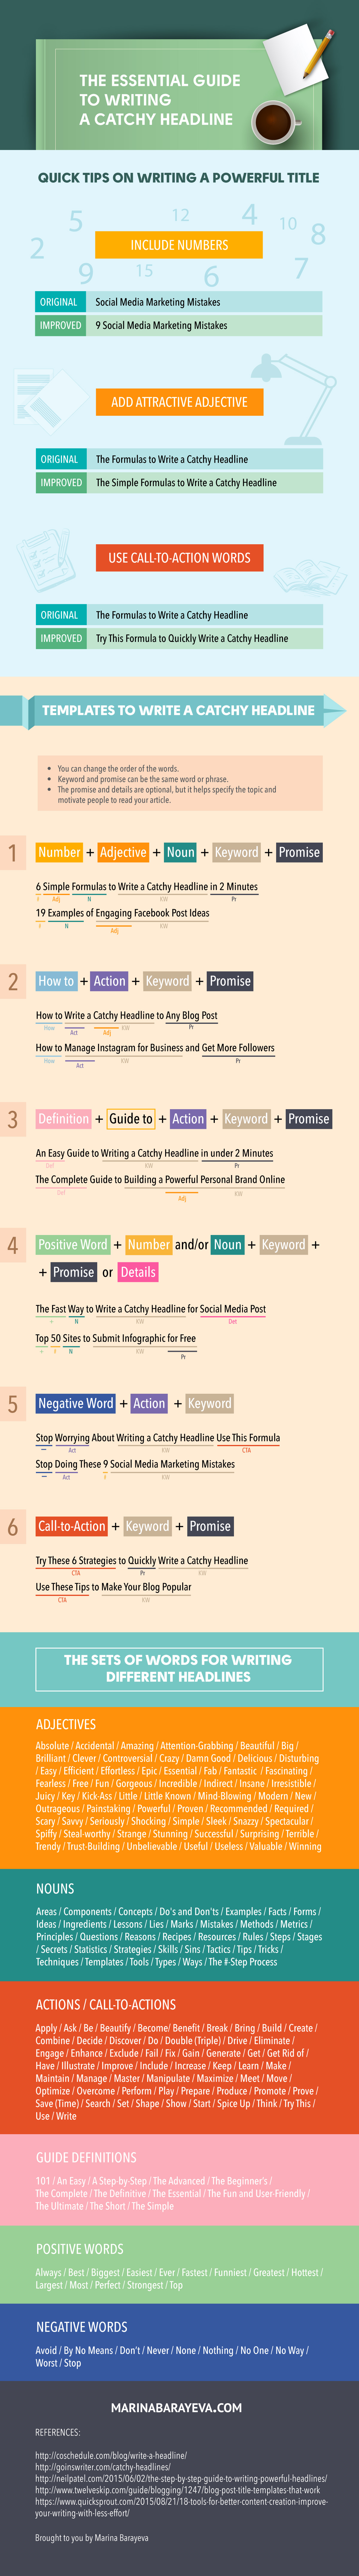 Looking for an easy way to write an attractive title for your blog post or article? Here are 6 templates to quickly write a catchy headline. They will help you easily to write an attractive title for a blog post or social media message, via @MarinaBarayeva.  #blogging #contentmarketing #bloggingtips #creativeentrepreneur #copywriting #writing #socialmedia #socialmediatips #socialmediamarketing #smm